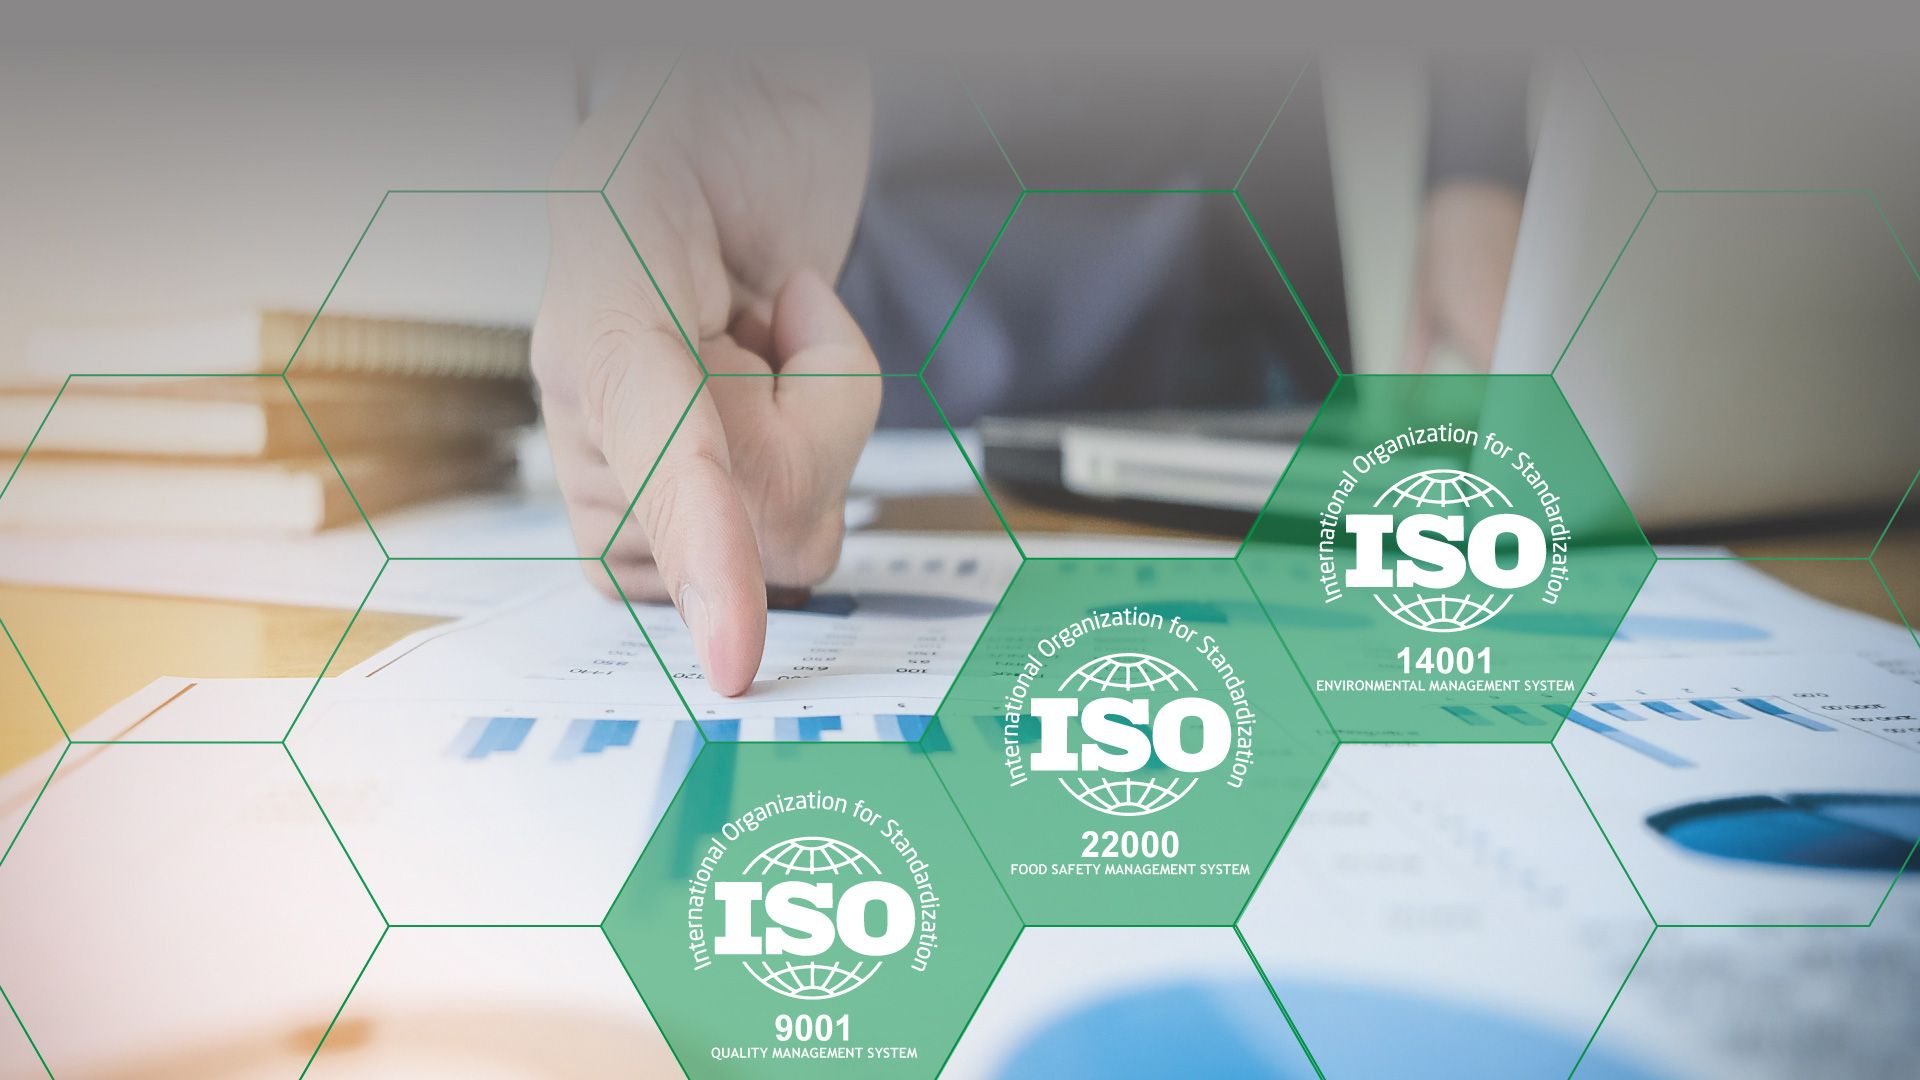 Iso Keeps The Customer In Focus And Customer Satisfaction As Driving Motivation The Benefits Accrued To The Company Food Safety Training Iso Drive Motivation